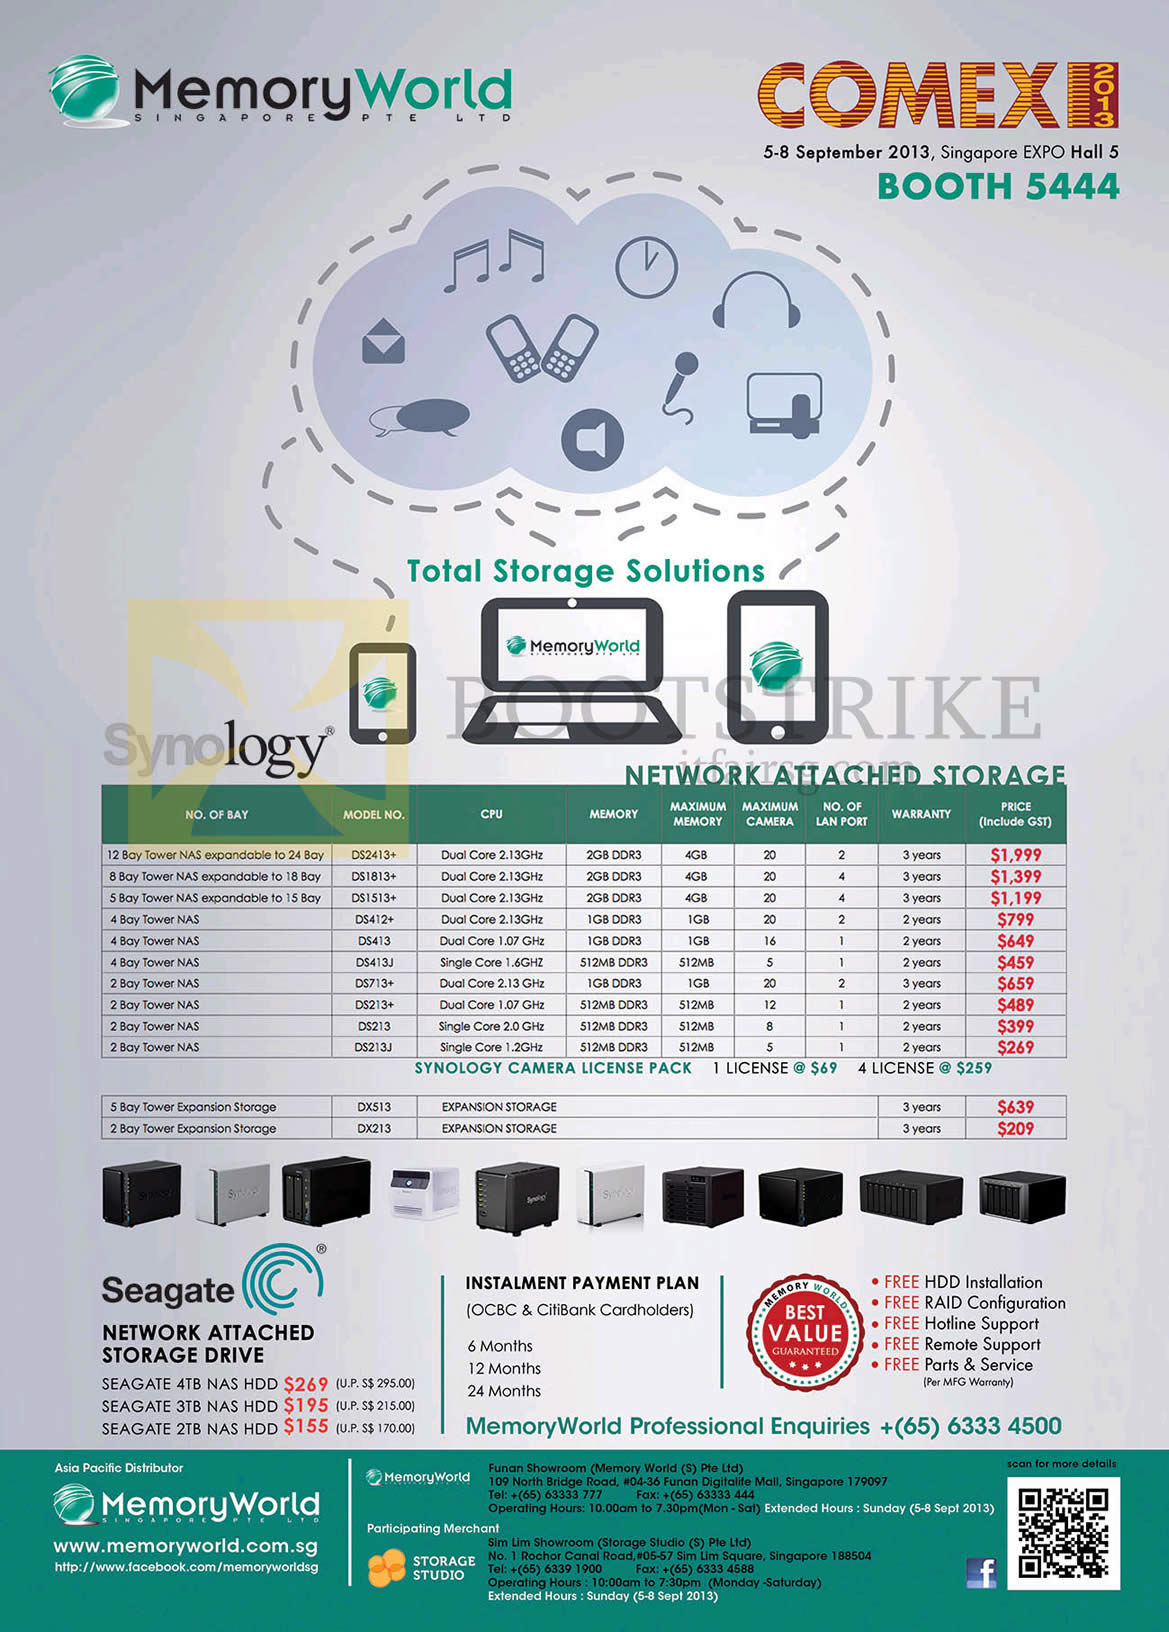 COMEX 2013 price list image brochure of Synology Memory World NAS DS2413, DS1813, DS1513, DS412, DS413, DS713, DS213, DS513, DX213